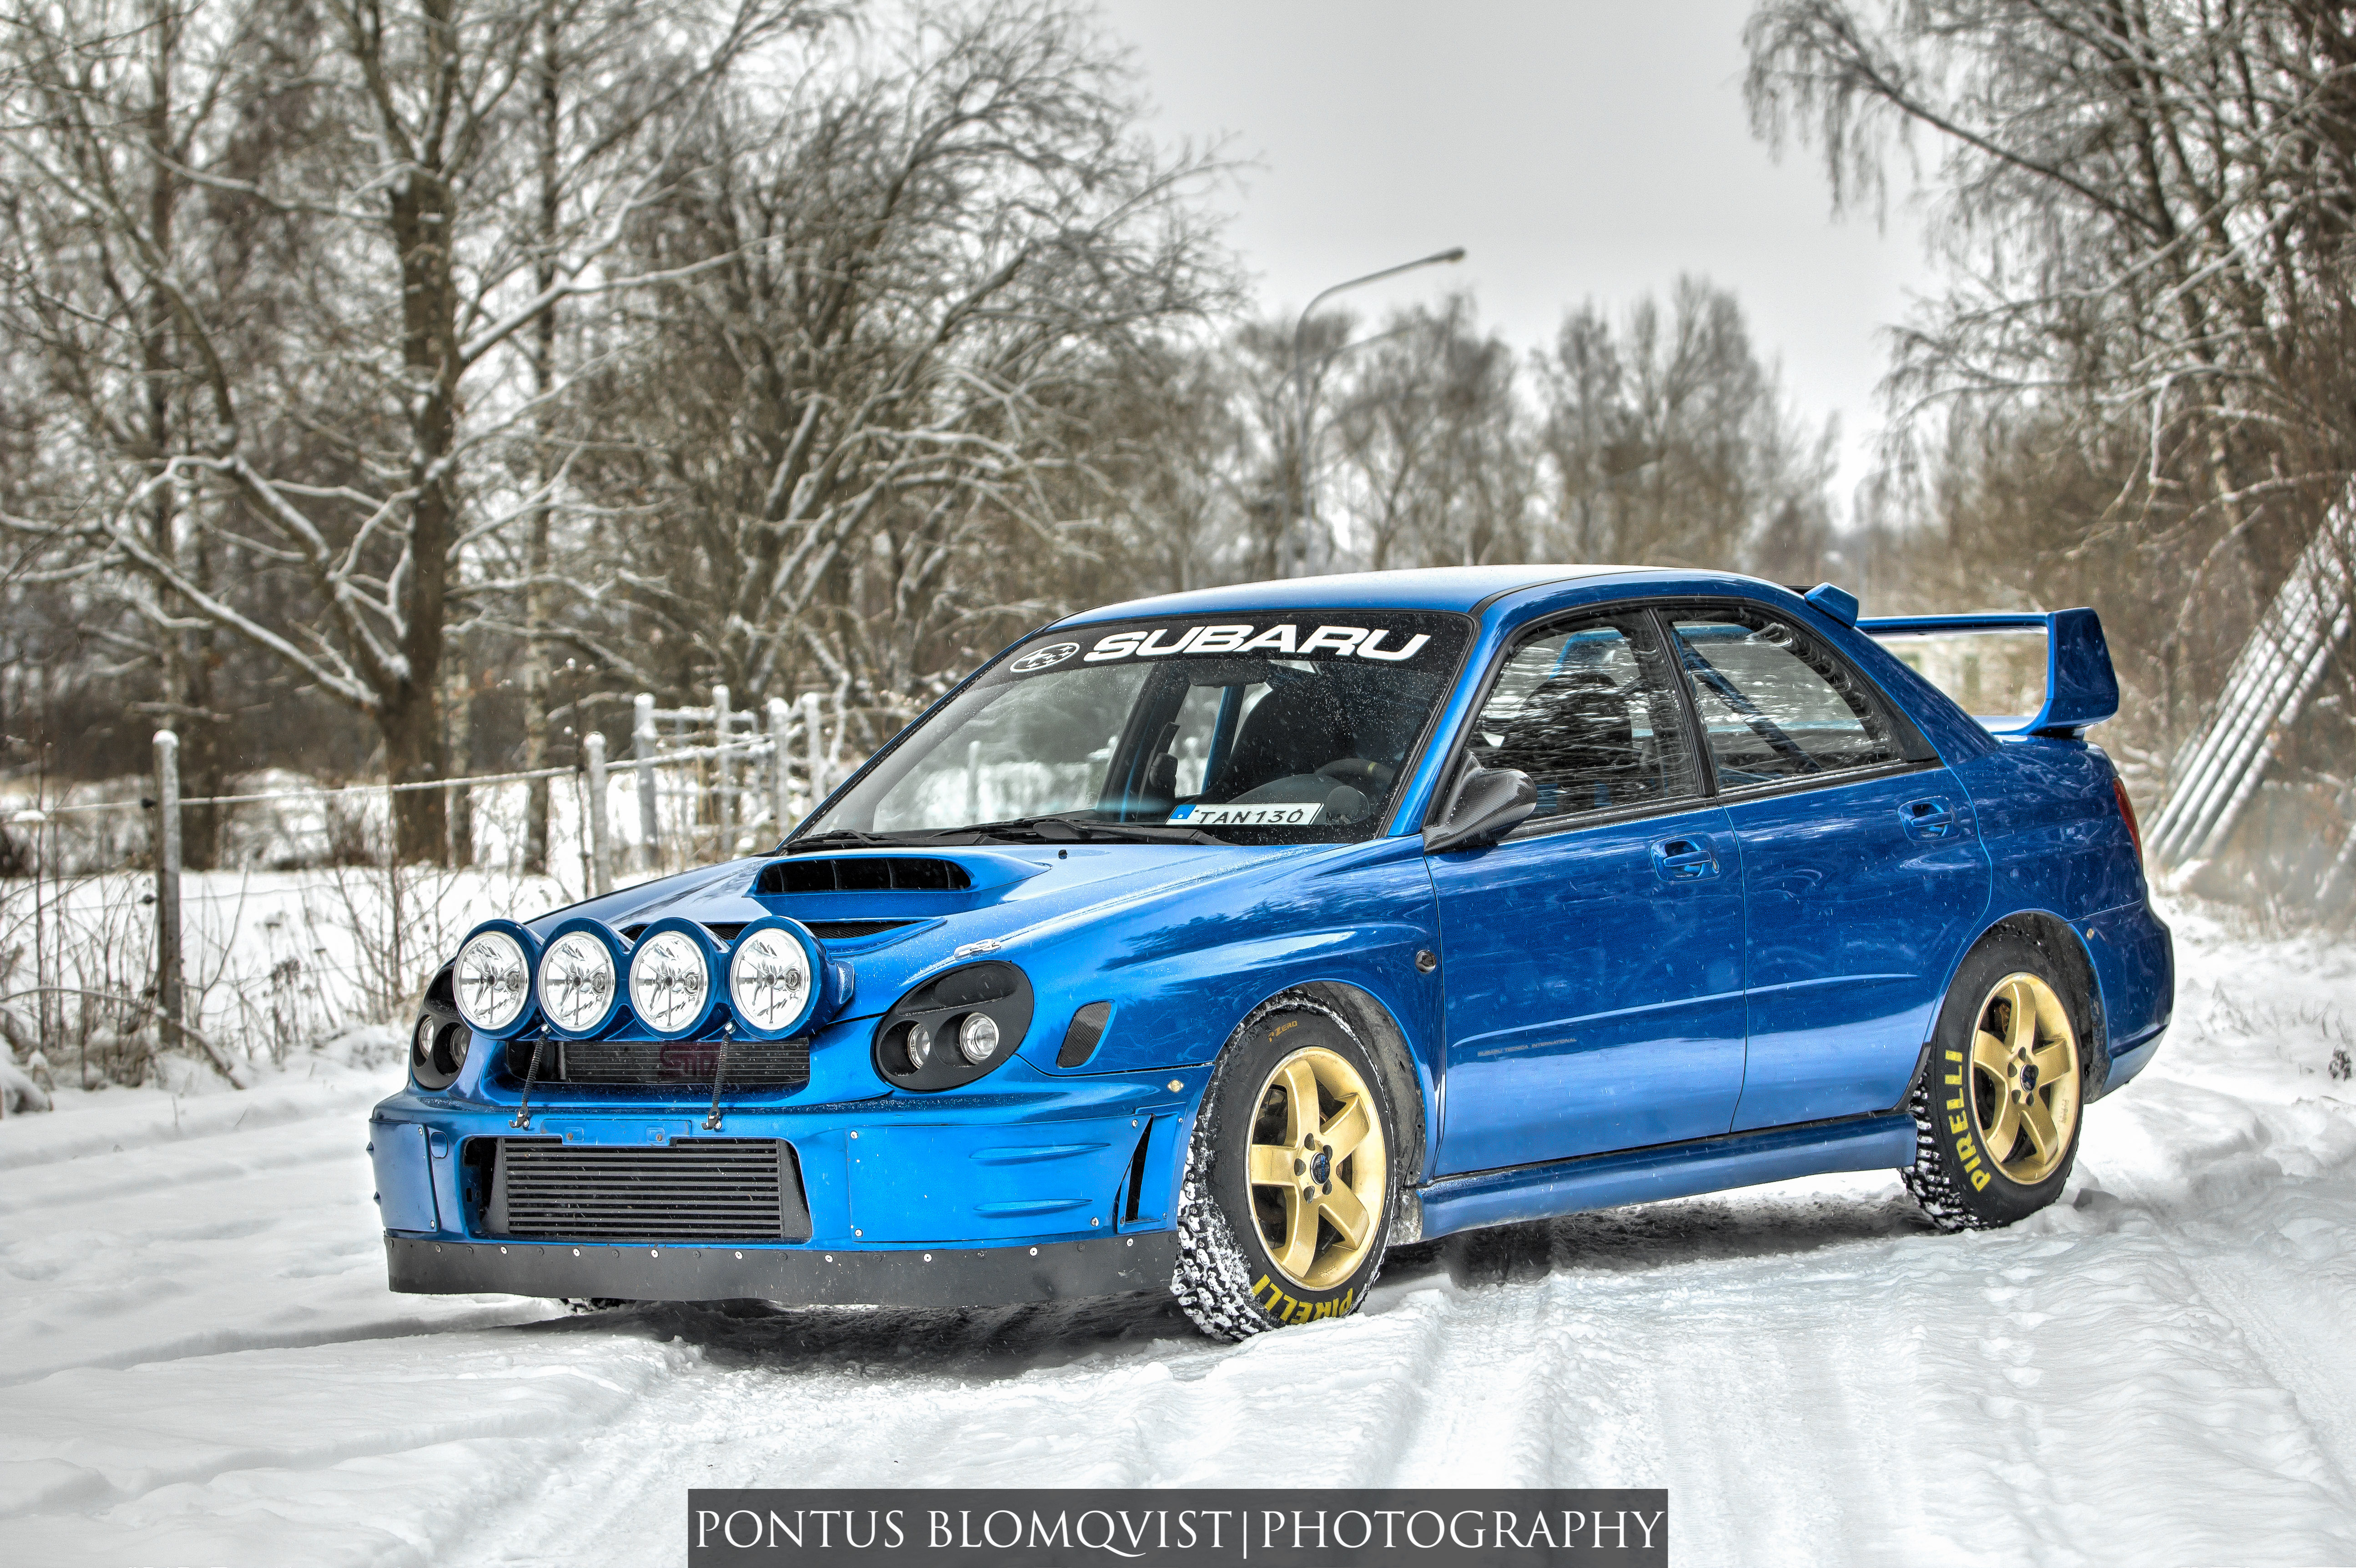 From Yesterdays Photo Session With A Nice Bugeye Sti